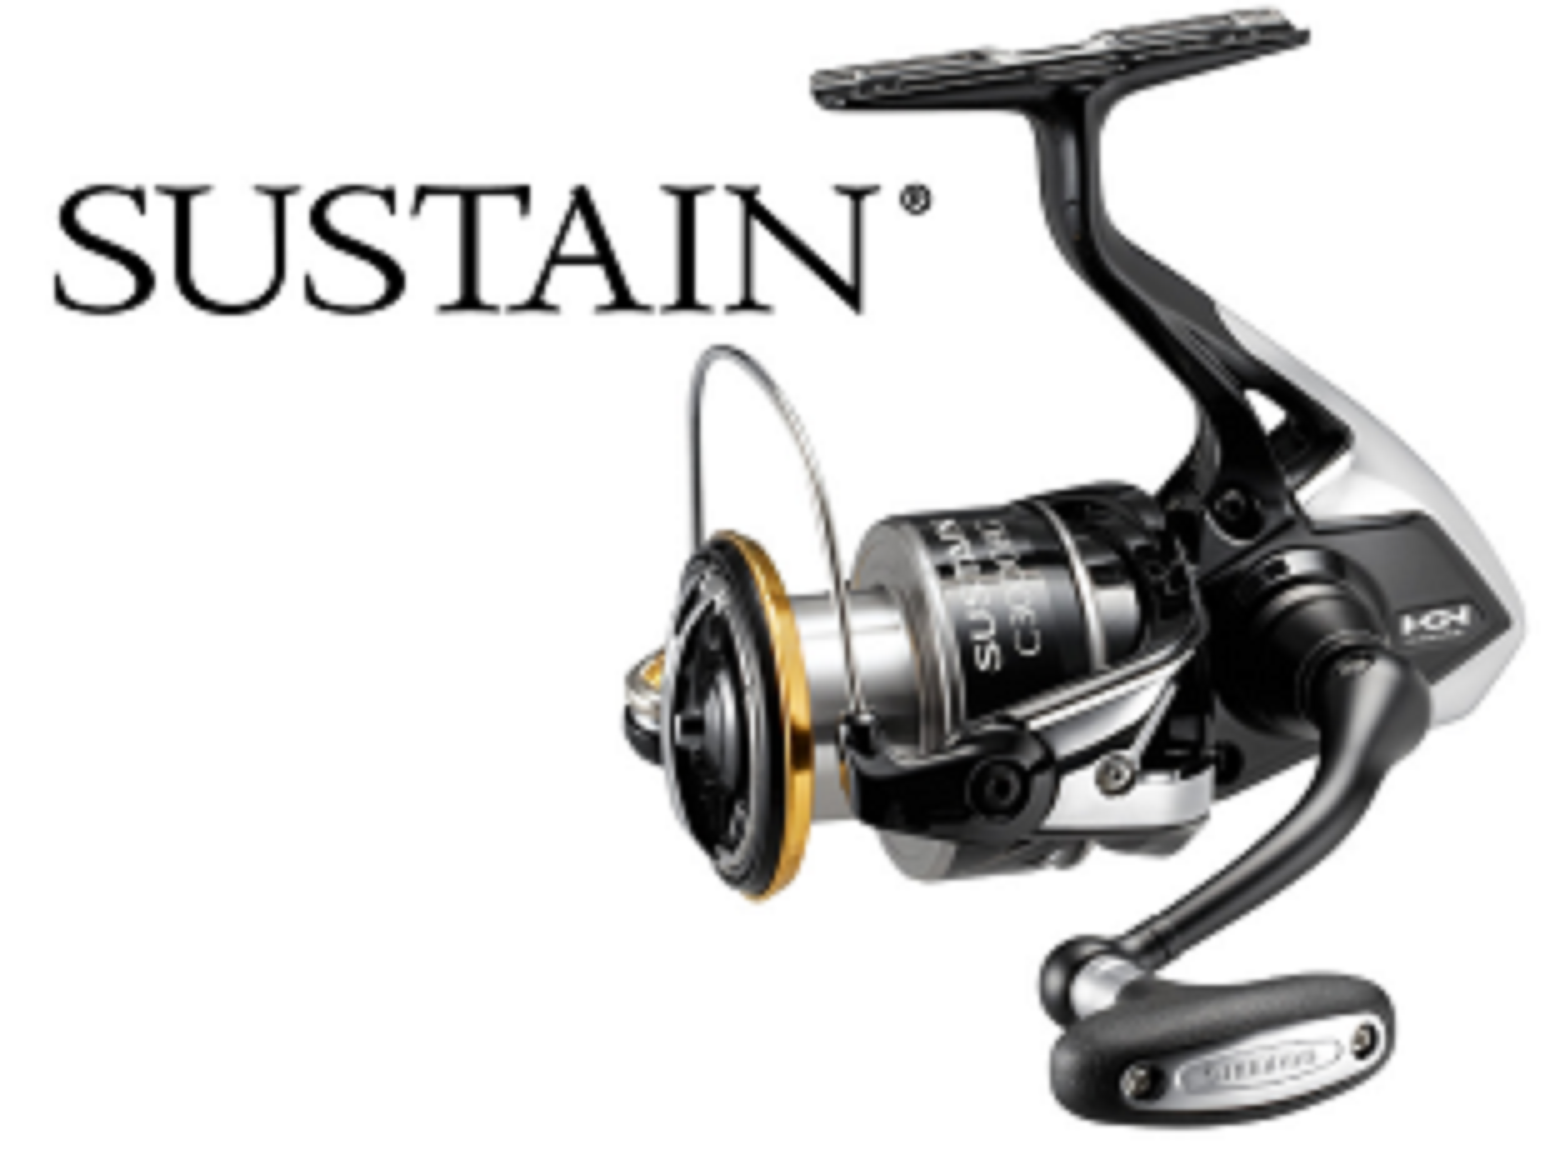 Shimano Sustain Spinning Reel Brand New in Box FASTSAFE Ship